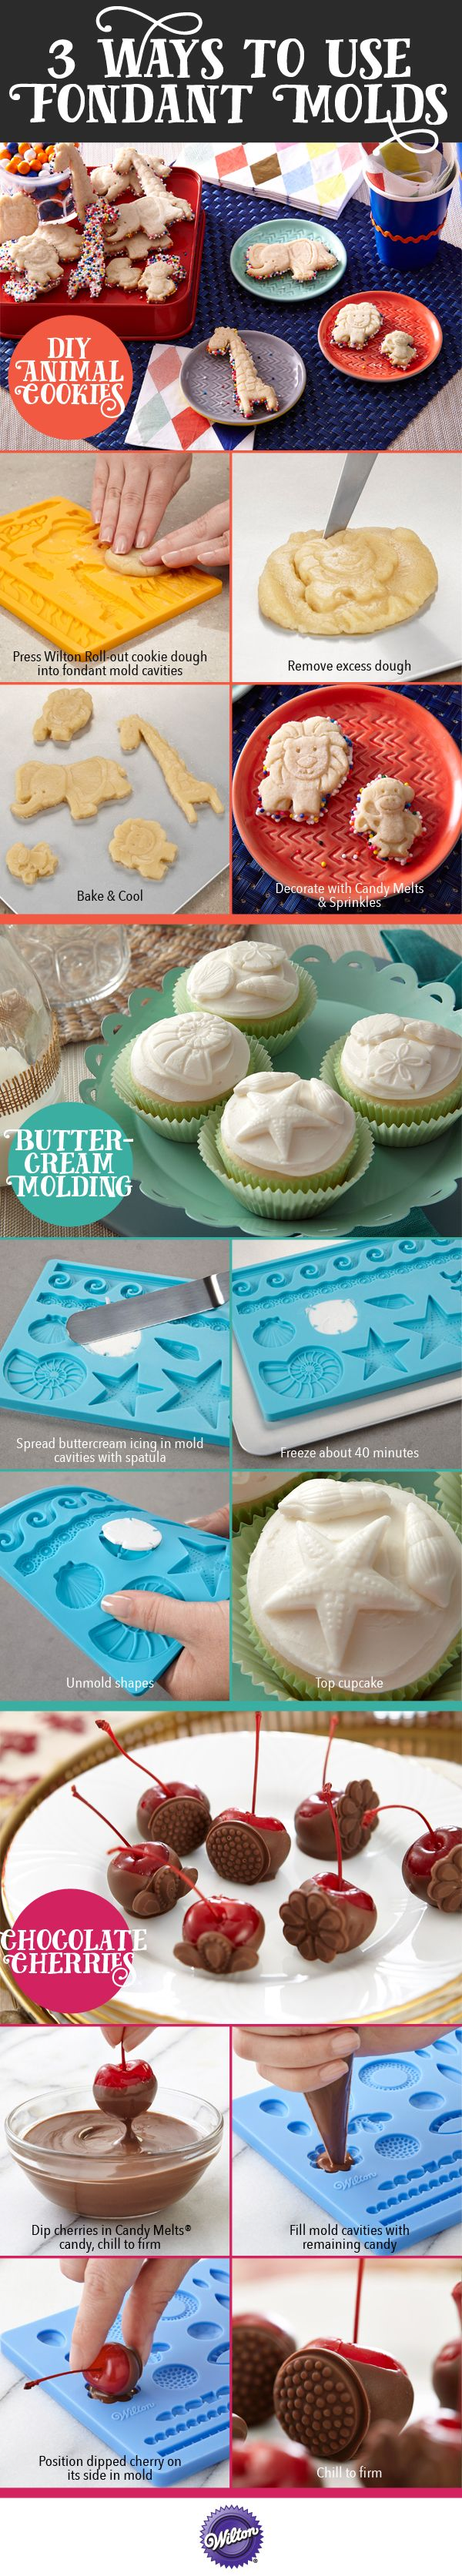 Are you a fondant expert? Not a fan of the stuff? Not even sure what it is? None of that matters with these three unique ways to use a fondant mold!  You can use Candy Melts candy, cookie dough and buttercream icing to make some phenomenal molded treats.